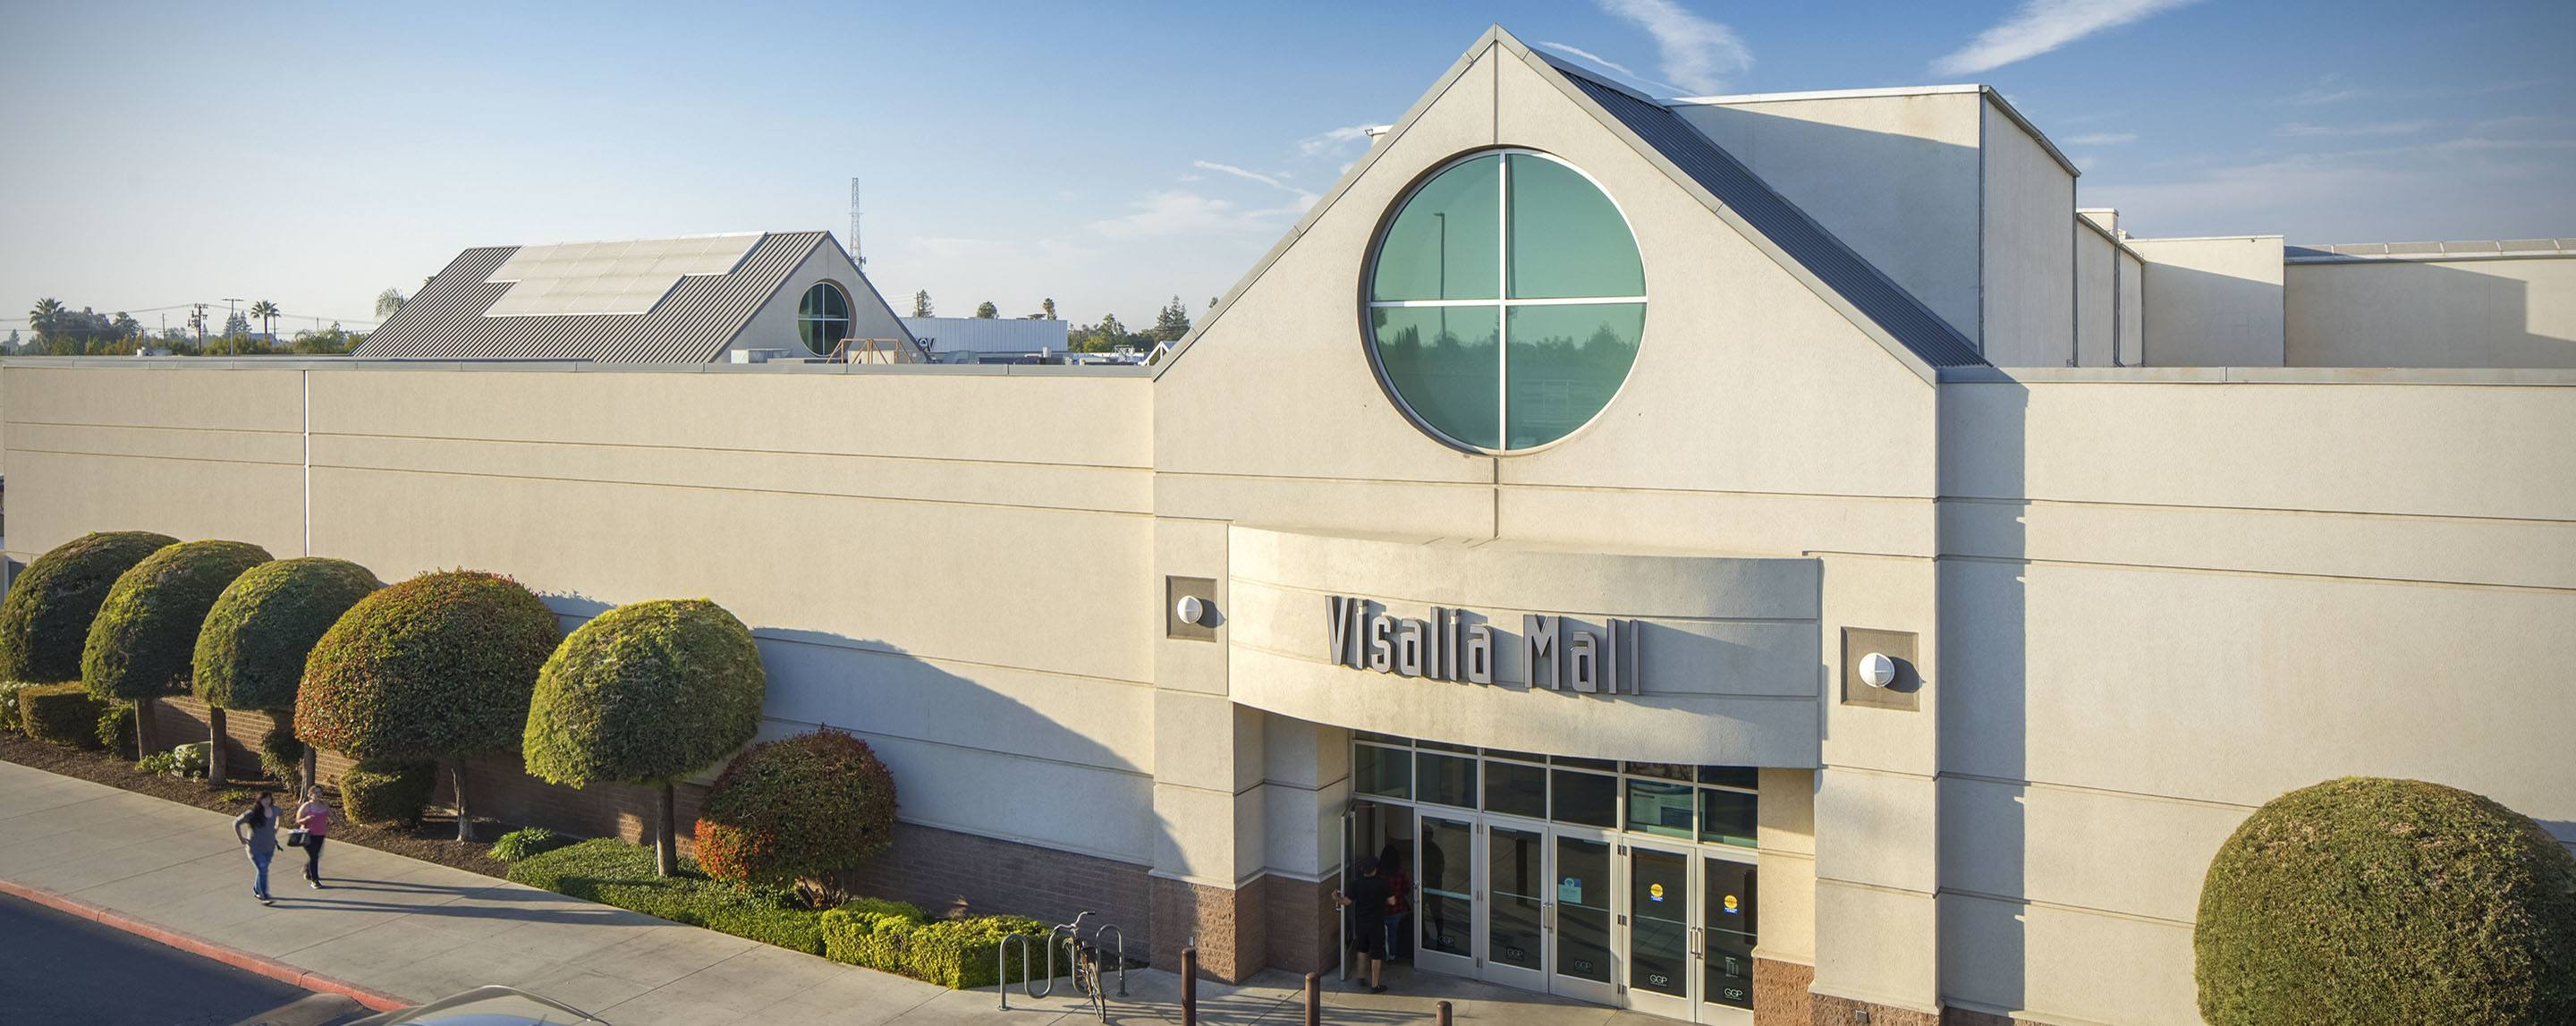 An exterior shot of the Visalia Mall. The building is landscaped with bushes and grass.